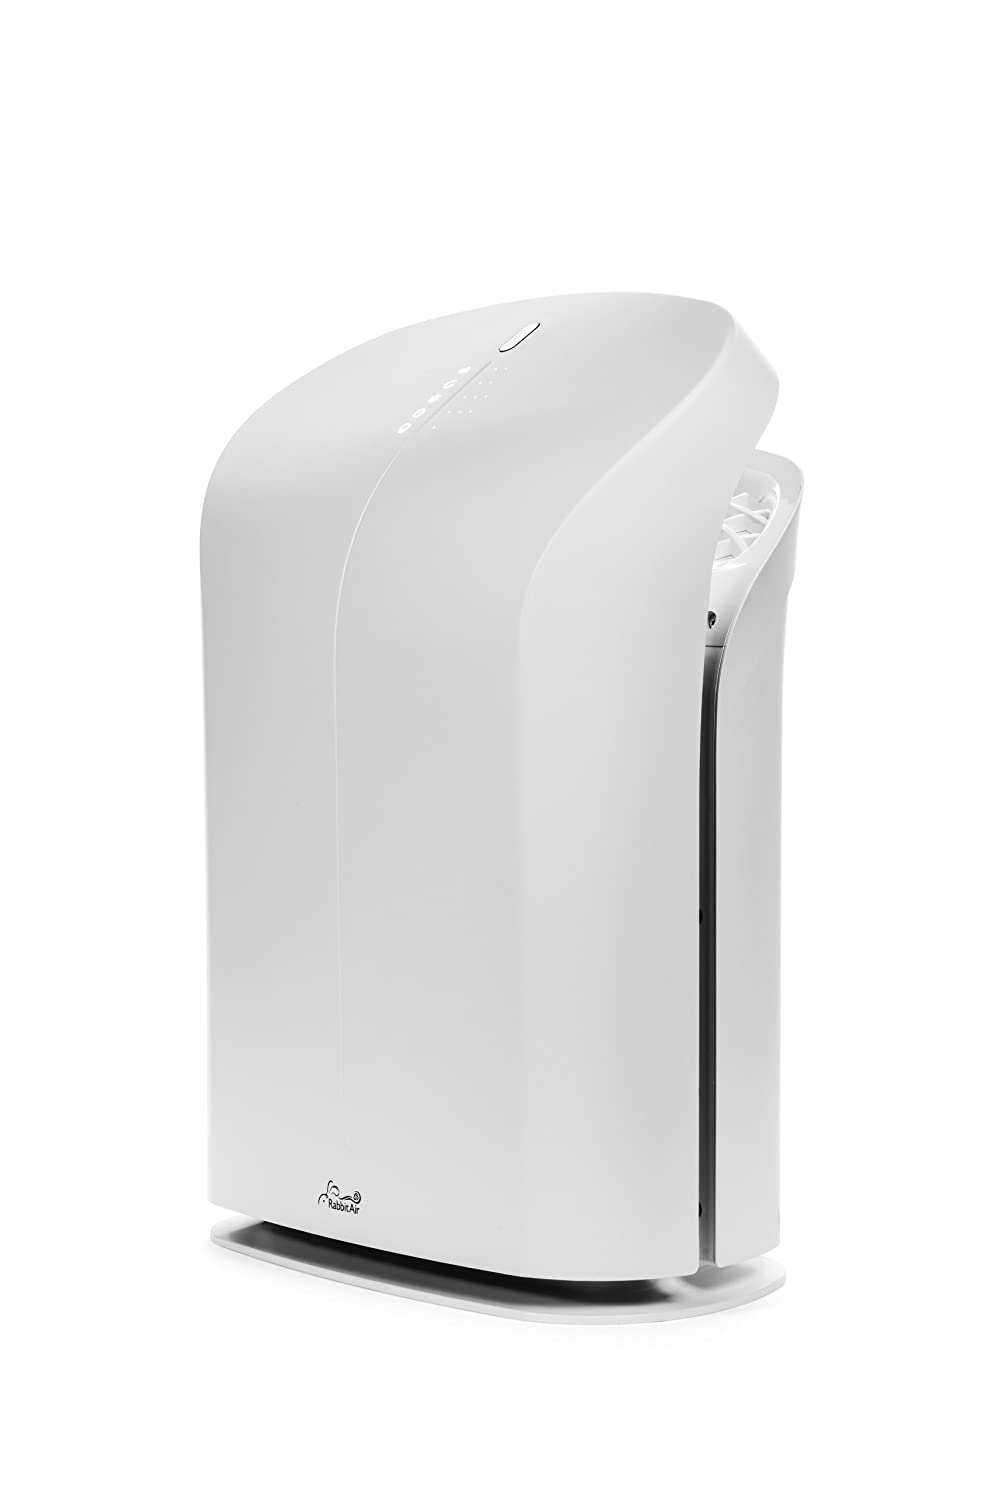 Quiet HEPA Air Purifier_Rabbit Air BioGS 2.0 Ultra Quiet HEPA Air Purifier (SPA-625A)